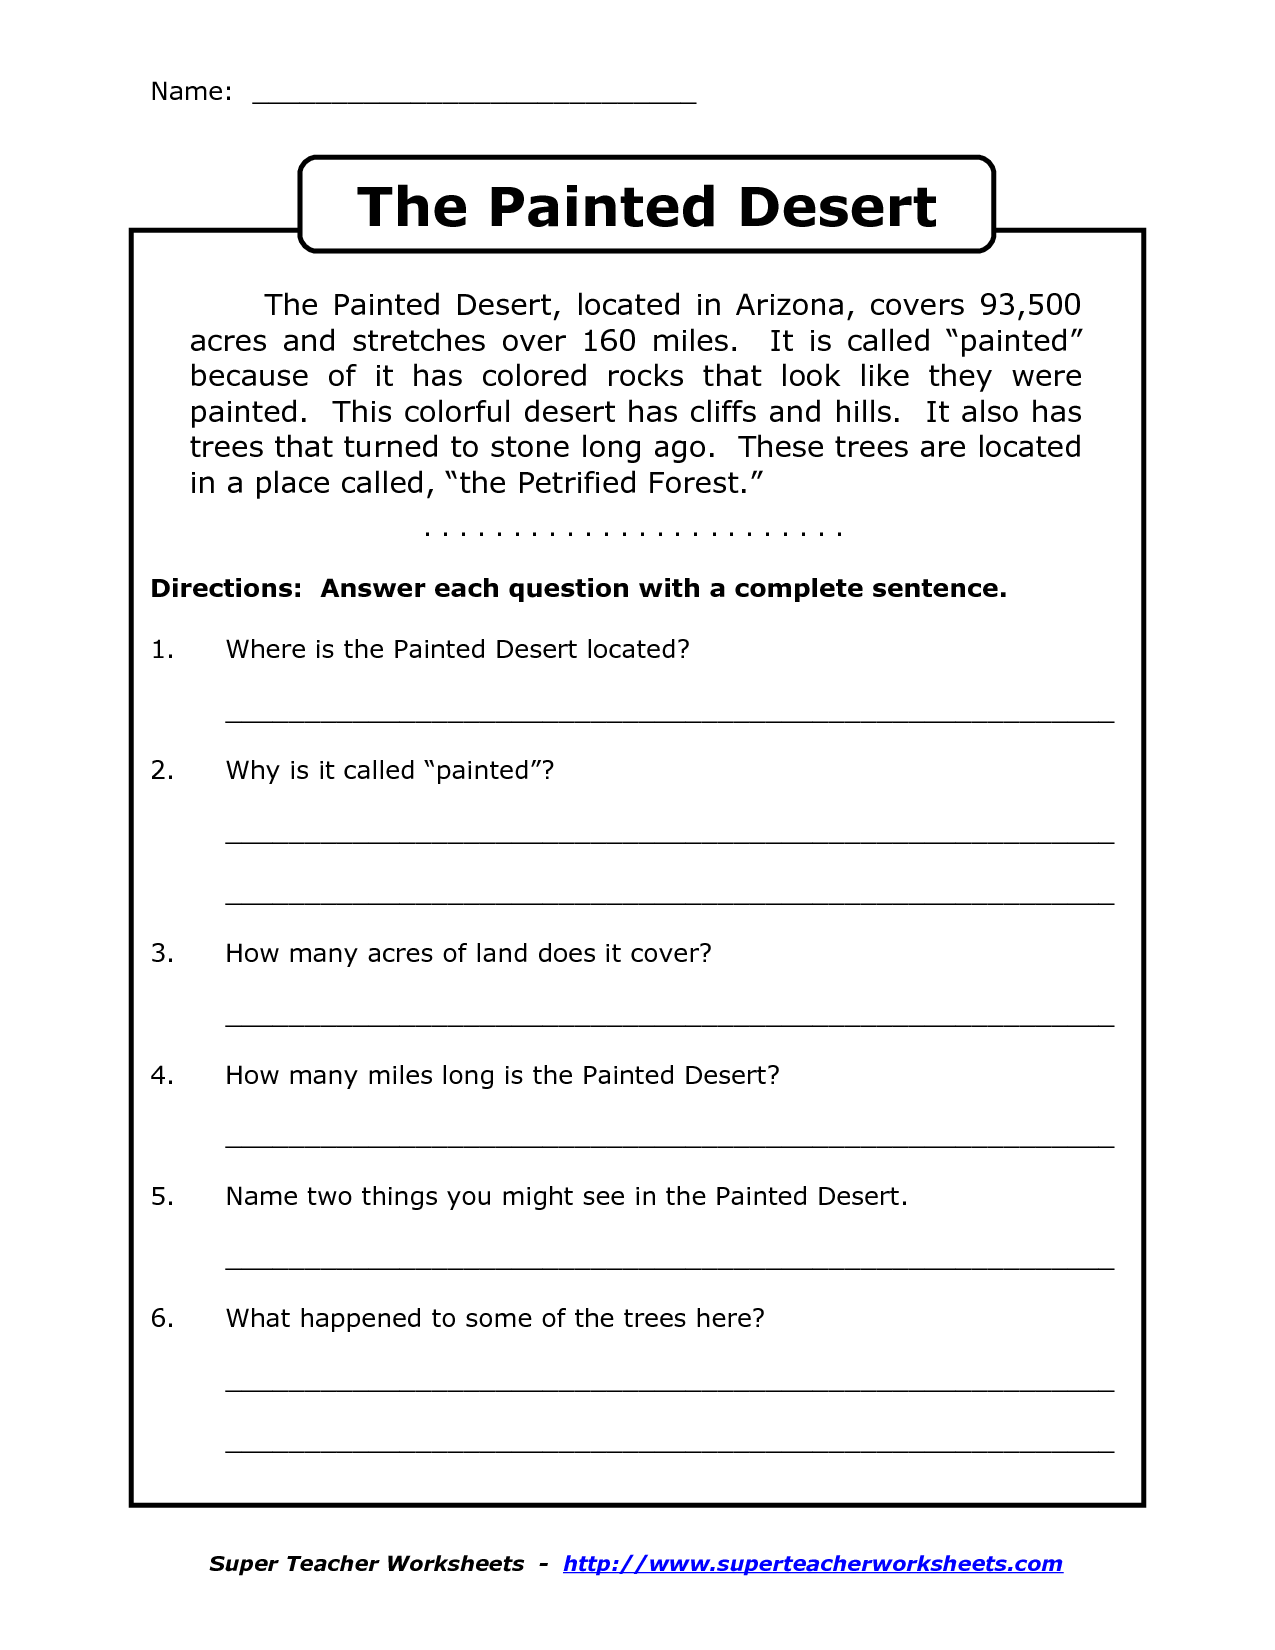 Worksheets 4th Grade Reading Worksheets reading worksheets for 4th grade comprehension 3 name the painted desert